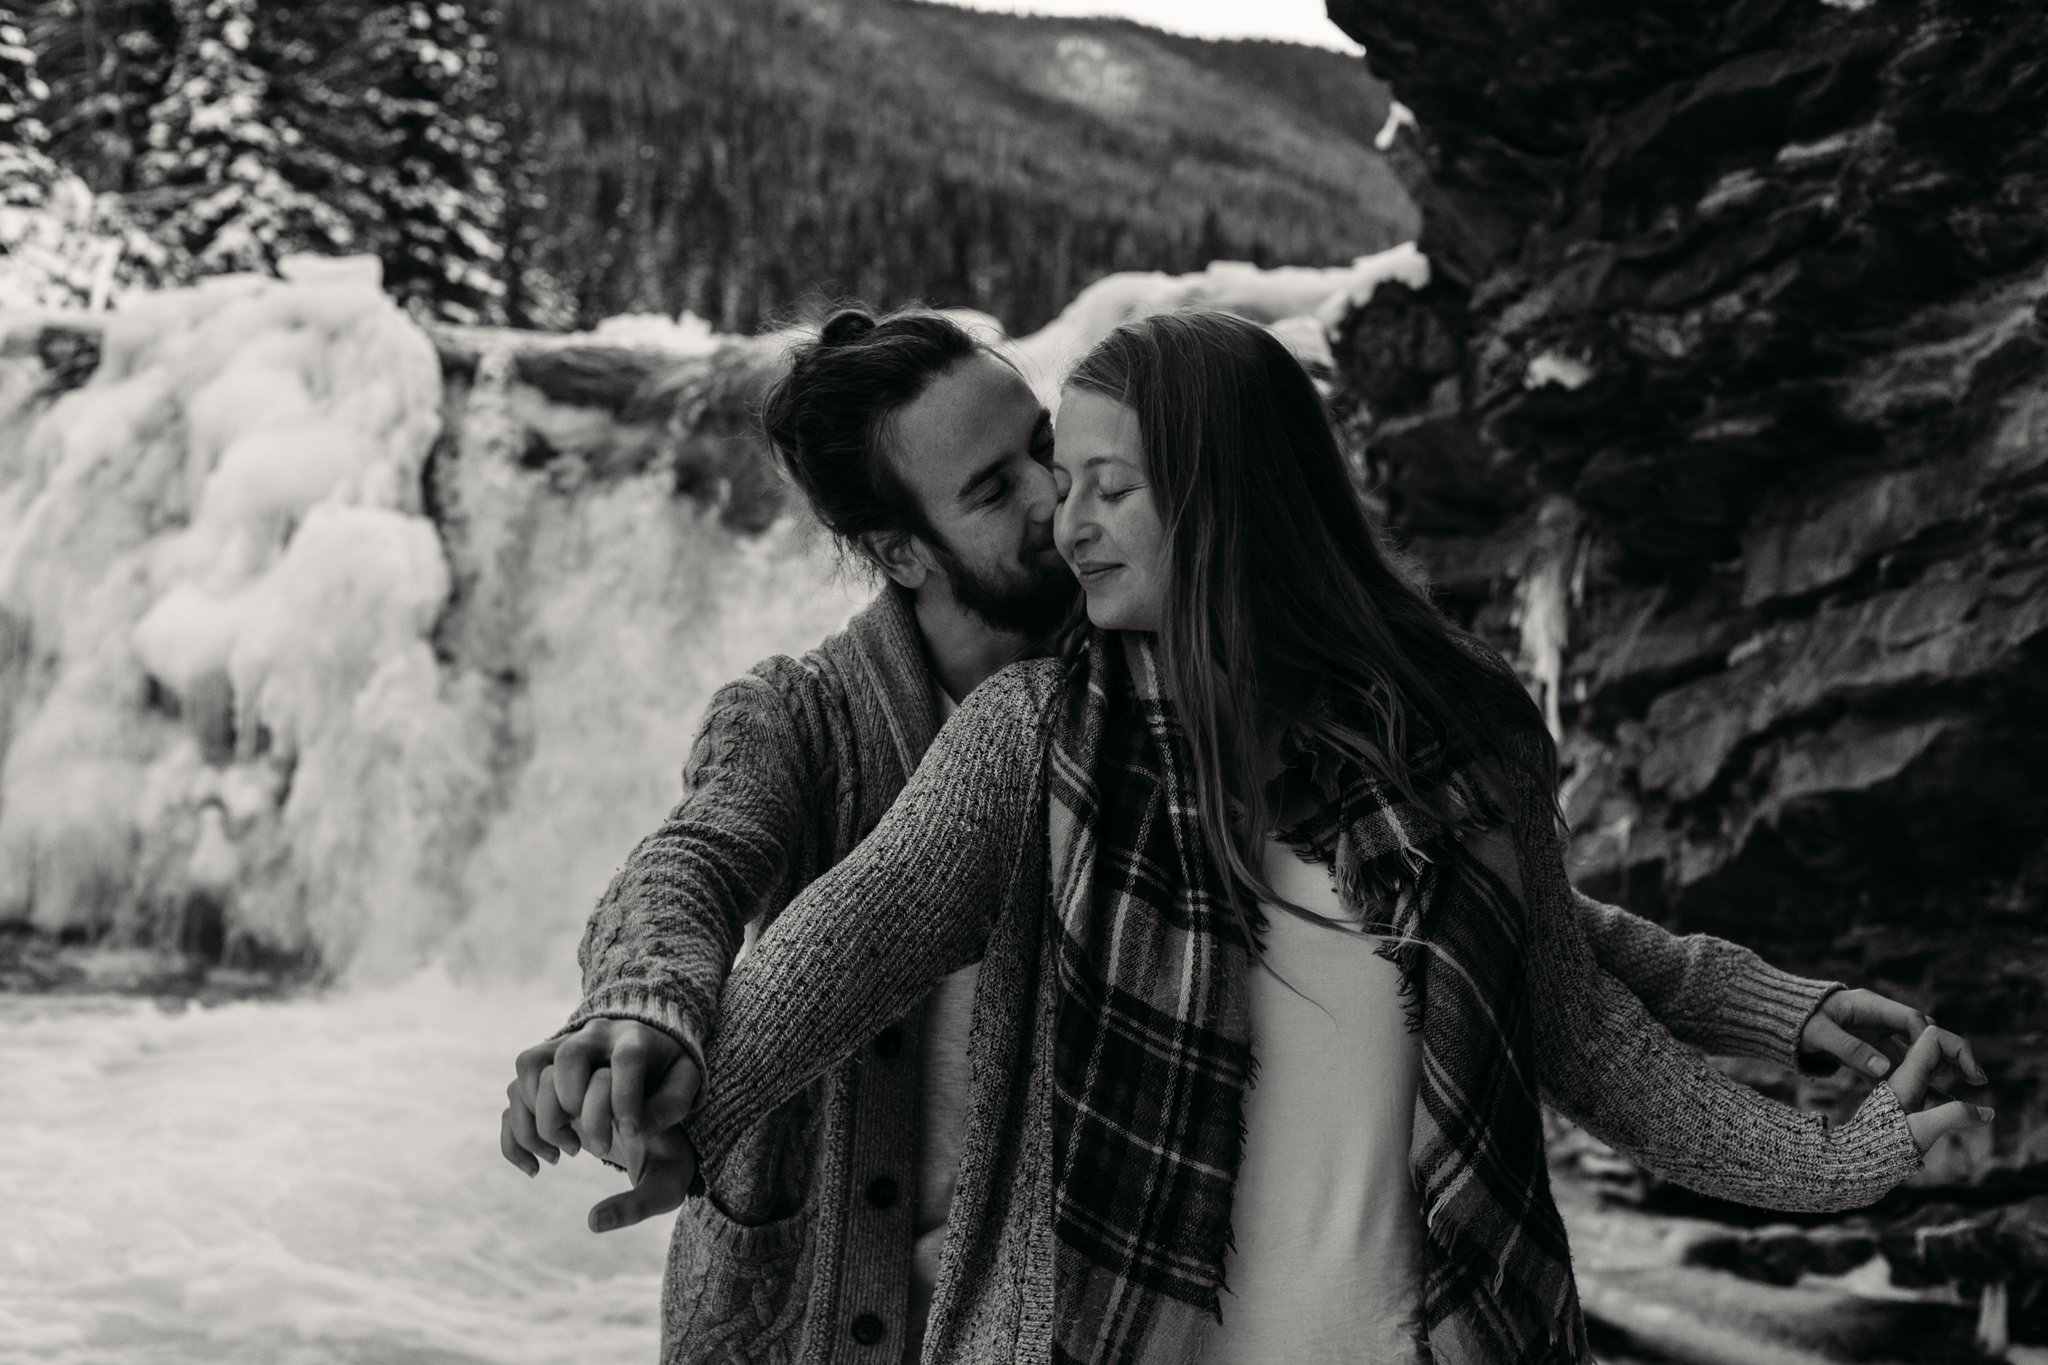 AshleyDaphnePhotography Calgary Photographer Wedding Engagement Sheep River Provincial Park Photos Kananskis Rocky Mountain Canmore Photographer_0074.jpg